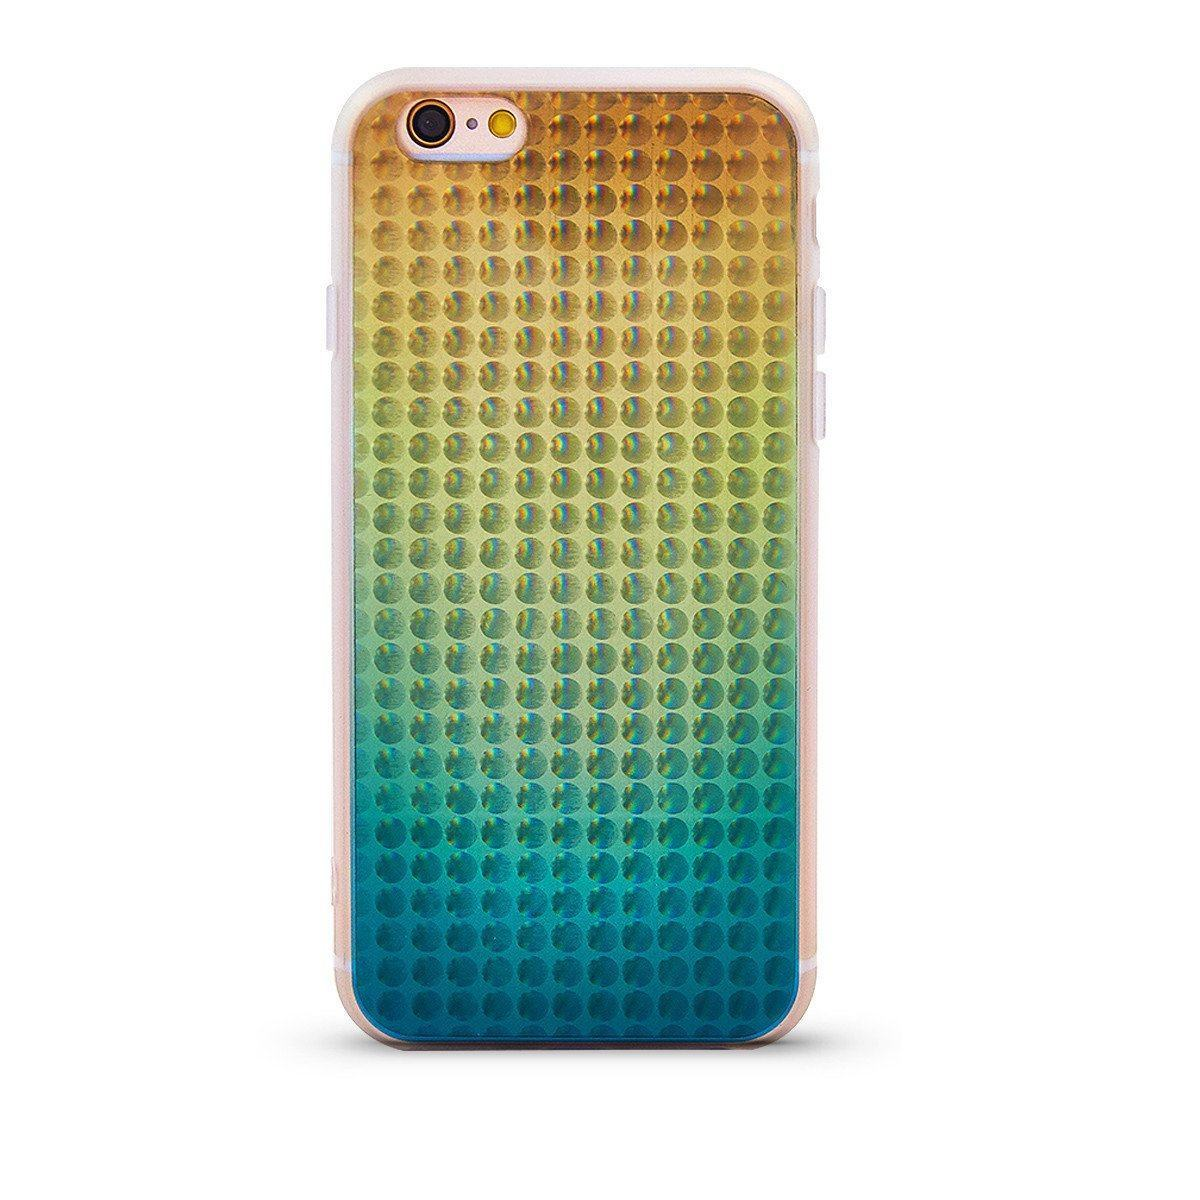 Bubble Case for iPhone 6 - Green & Orange